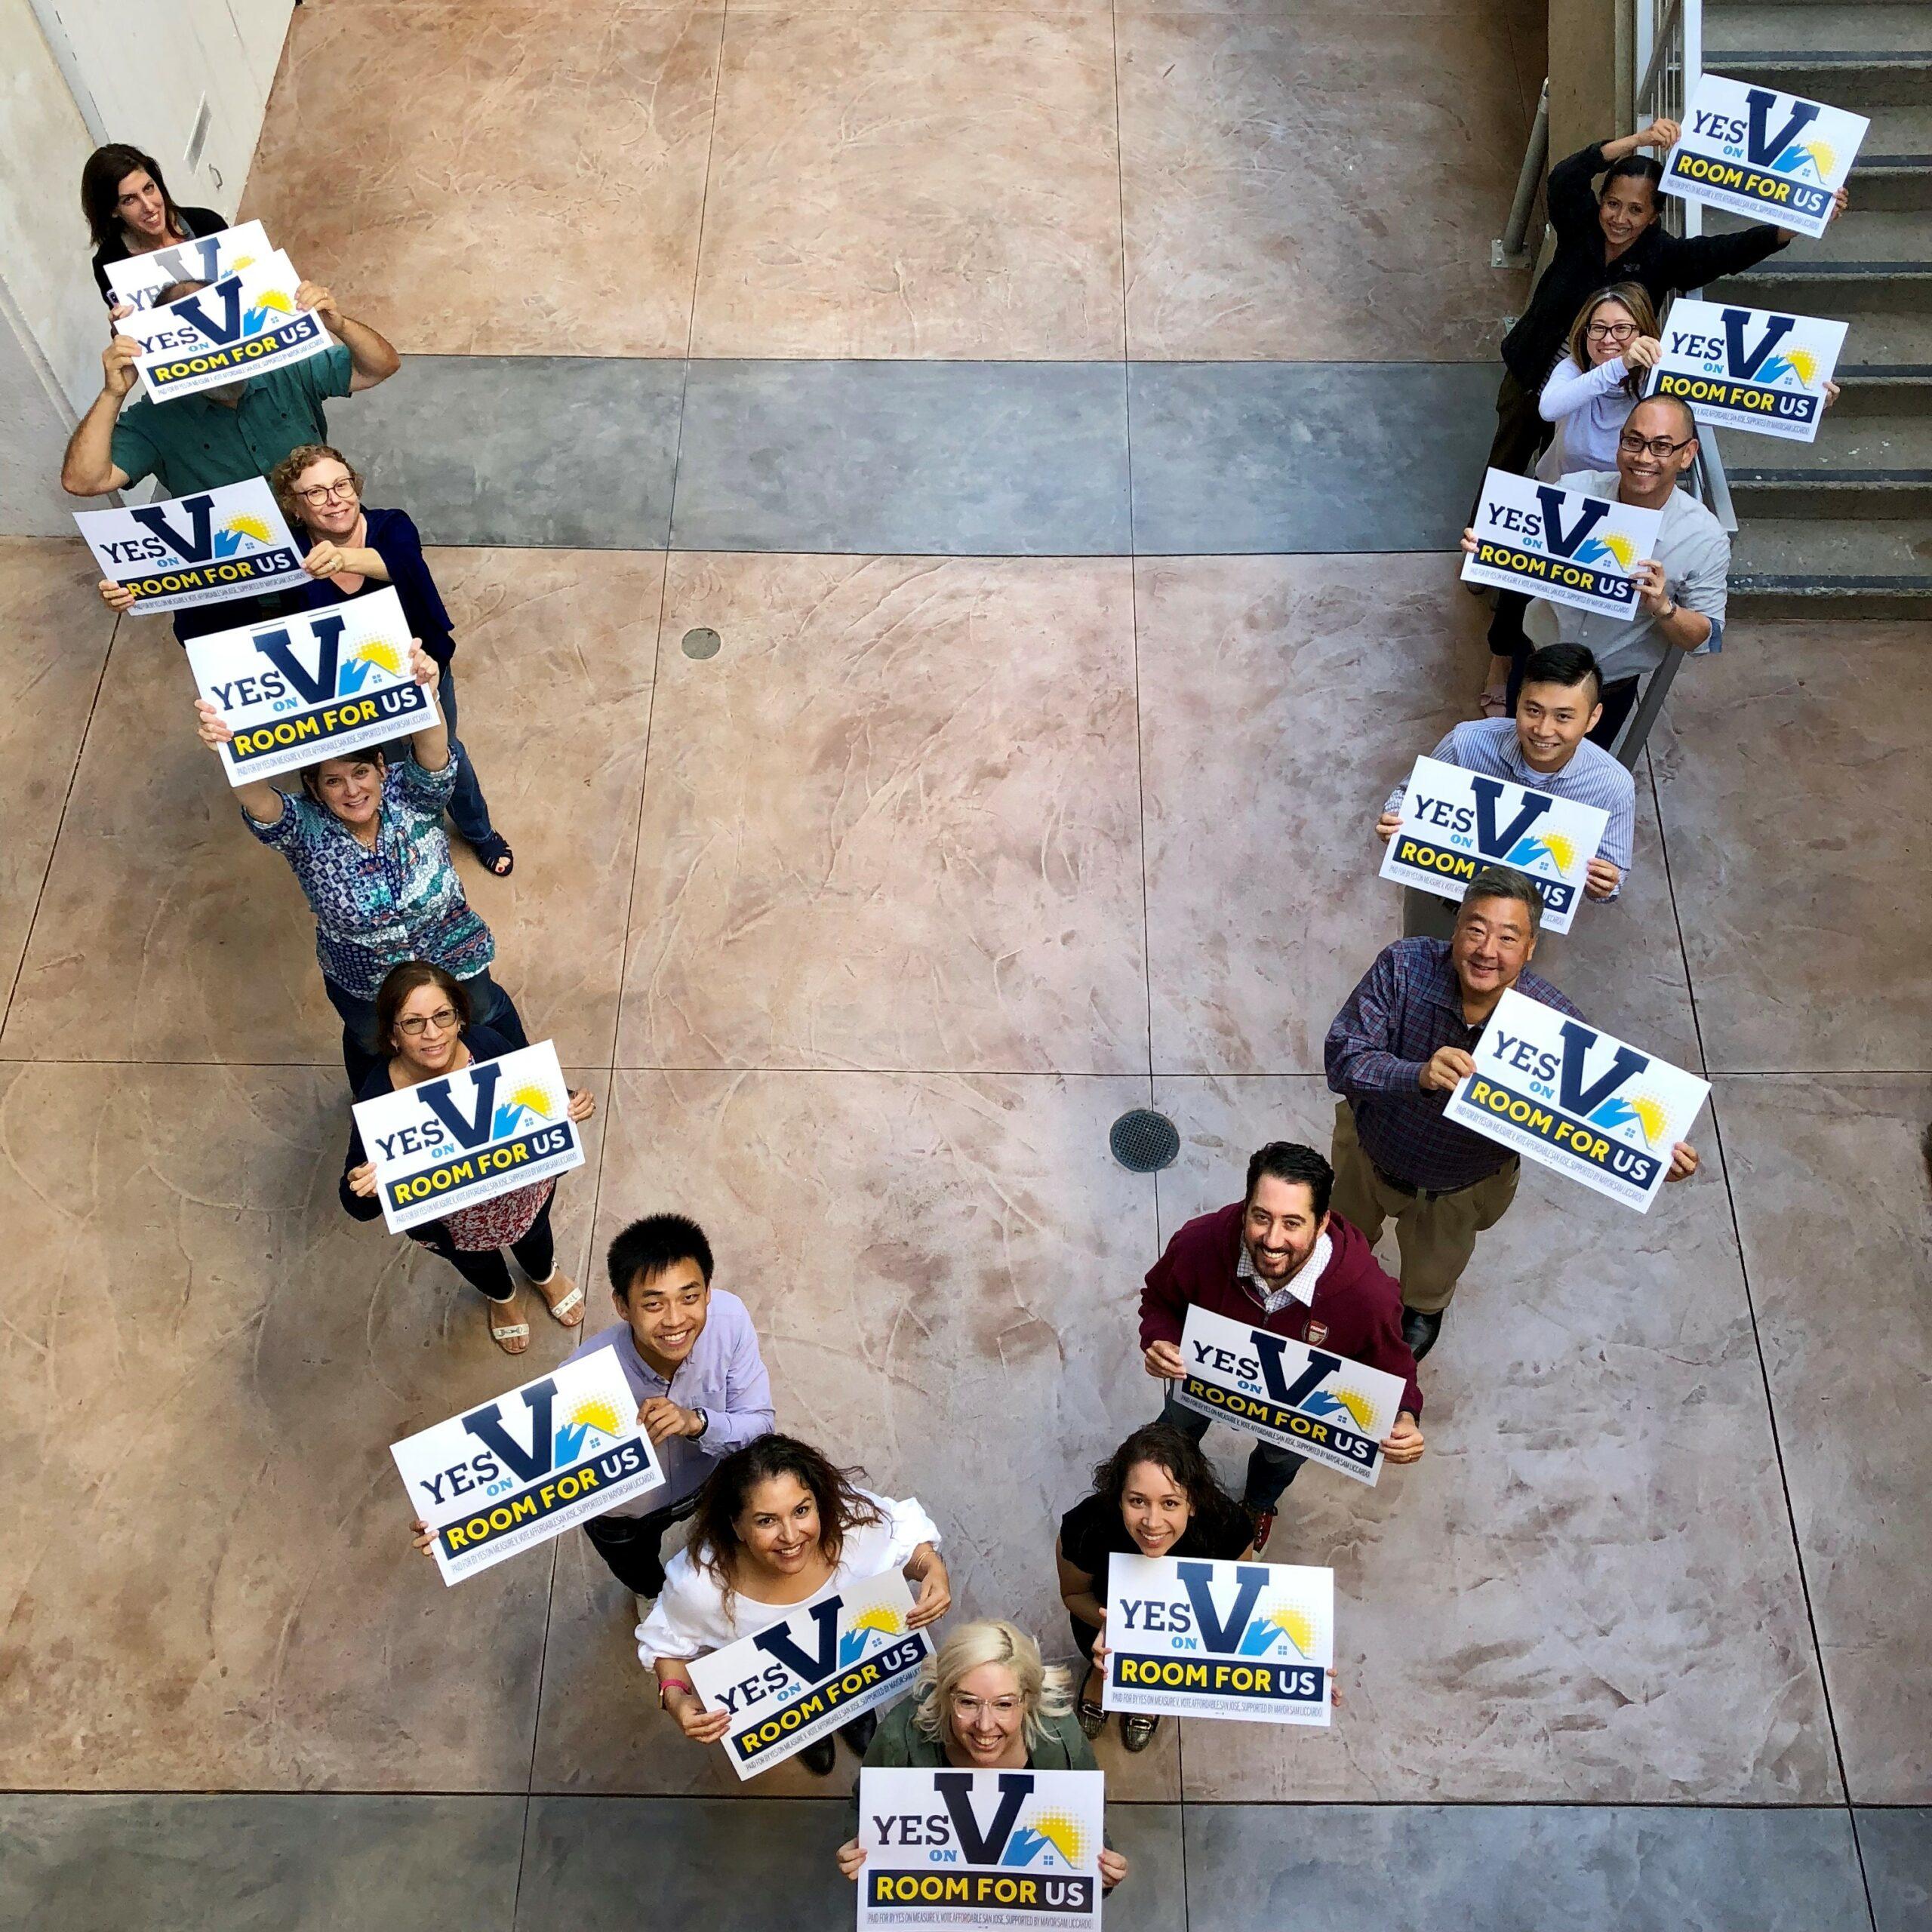 Housing Trust staff showing support for Measure V, the affordable housing bond issue on the ballot in San Jose